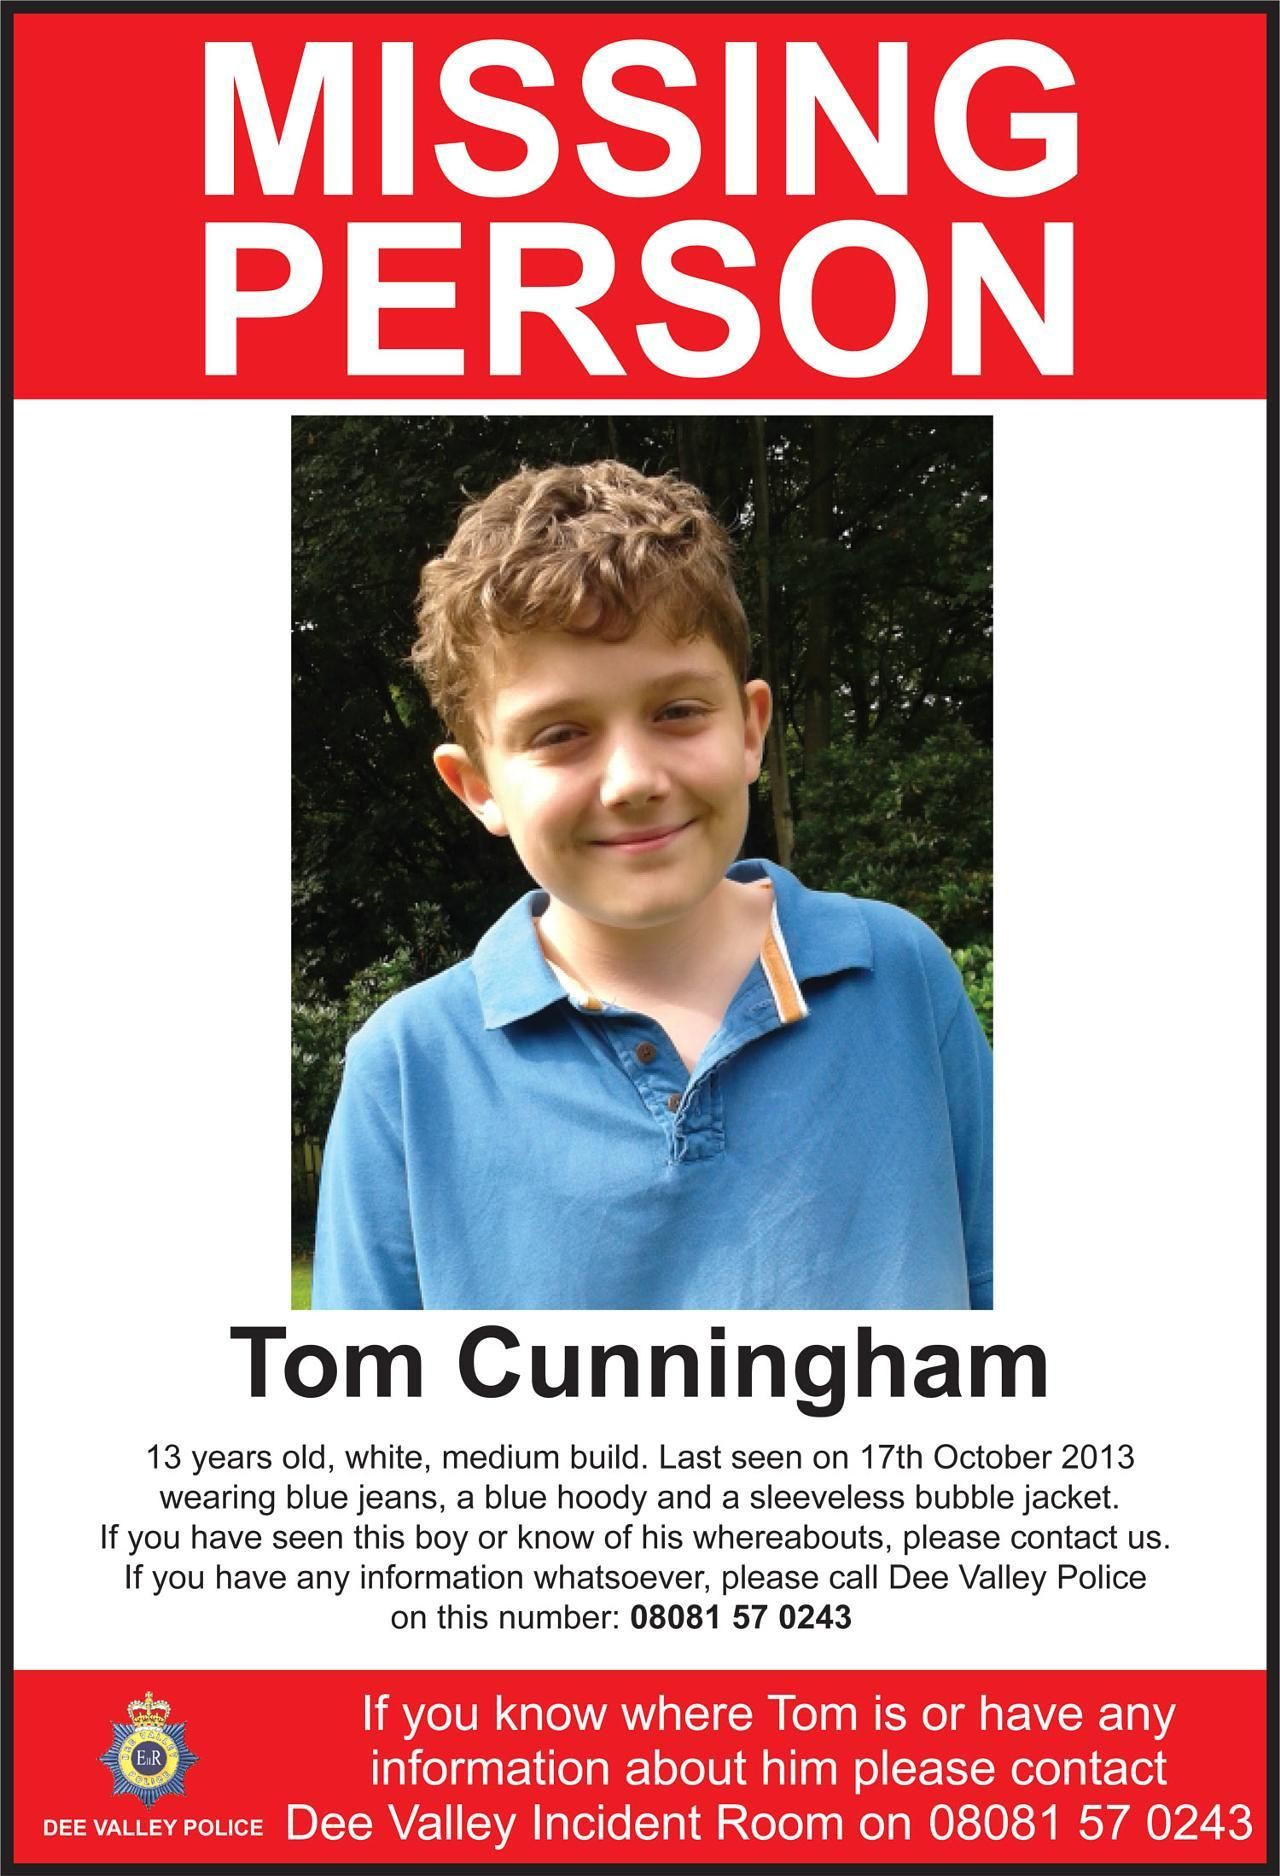 14 Missing Person Poster Templates